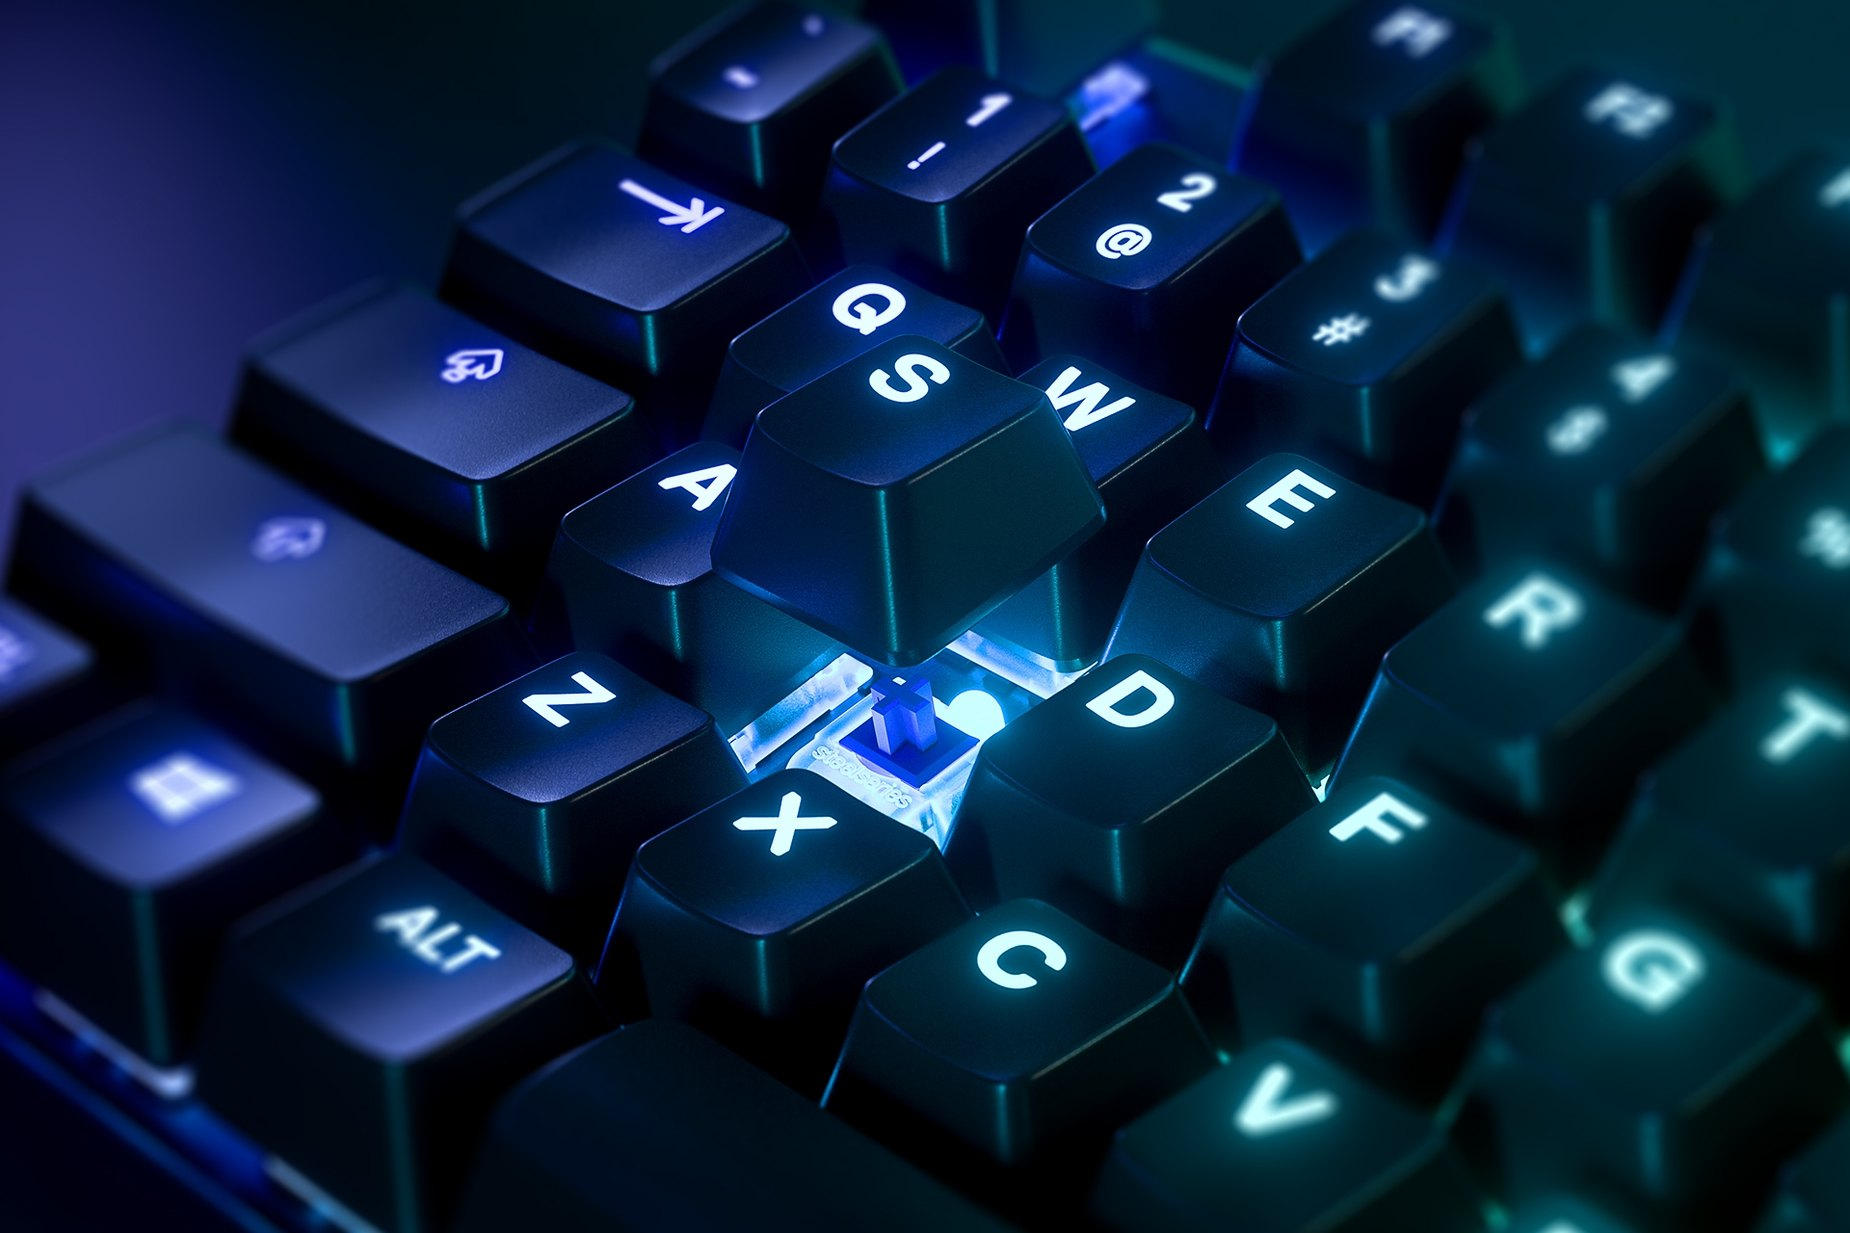 Zoomed in view of a single key on the US English-Apex 7 TKL (Blue Switch) gaming keyboard, the key is raised up to show the SteelSeries QX2 Mechanical RGB Switch underneath